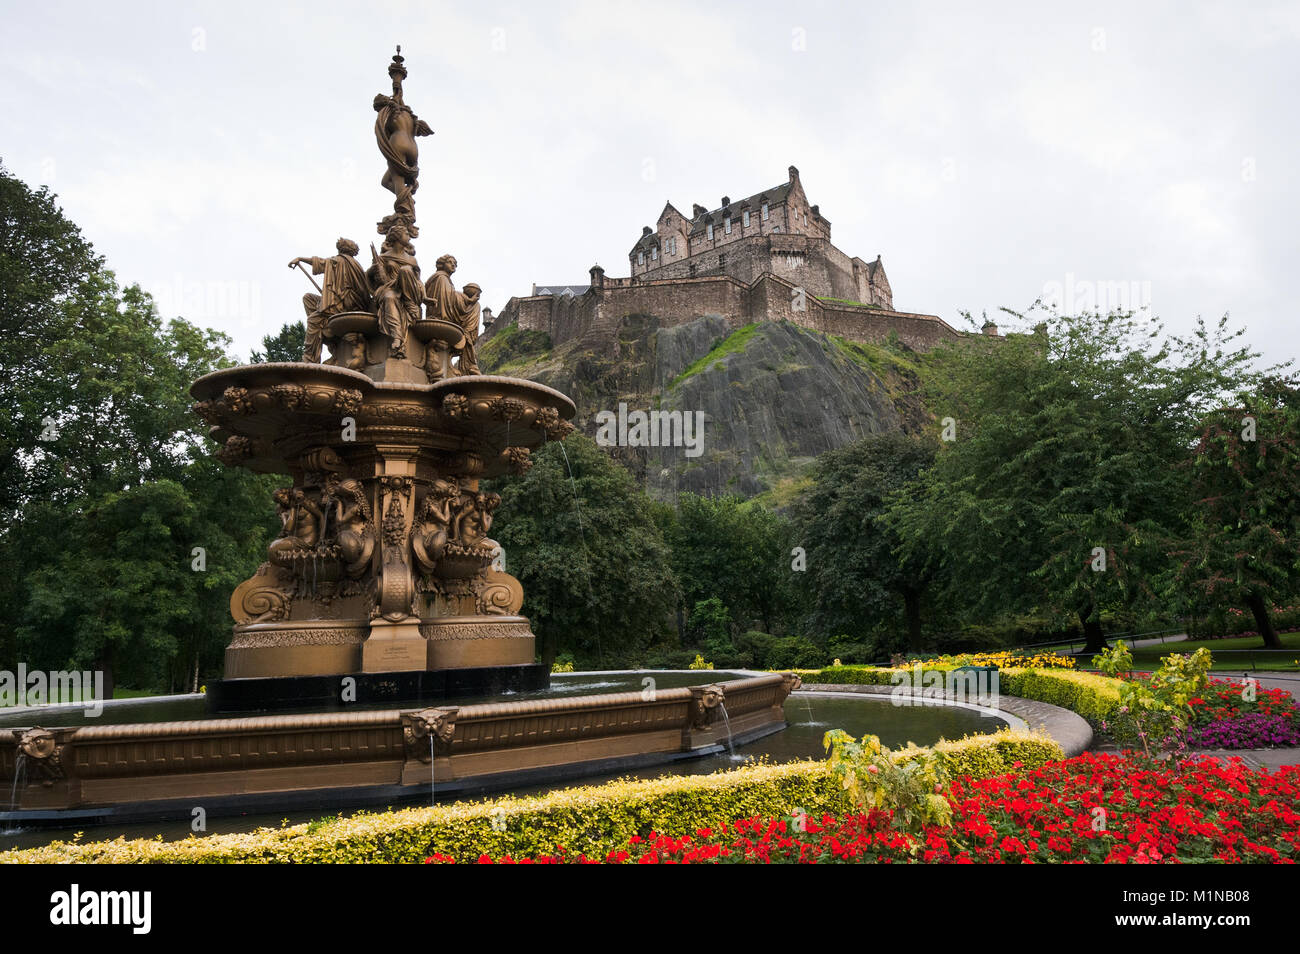 View of Edinburgh castle from princess gardens with the famous fountain. - Stock Image